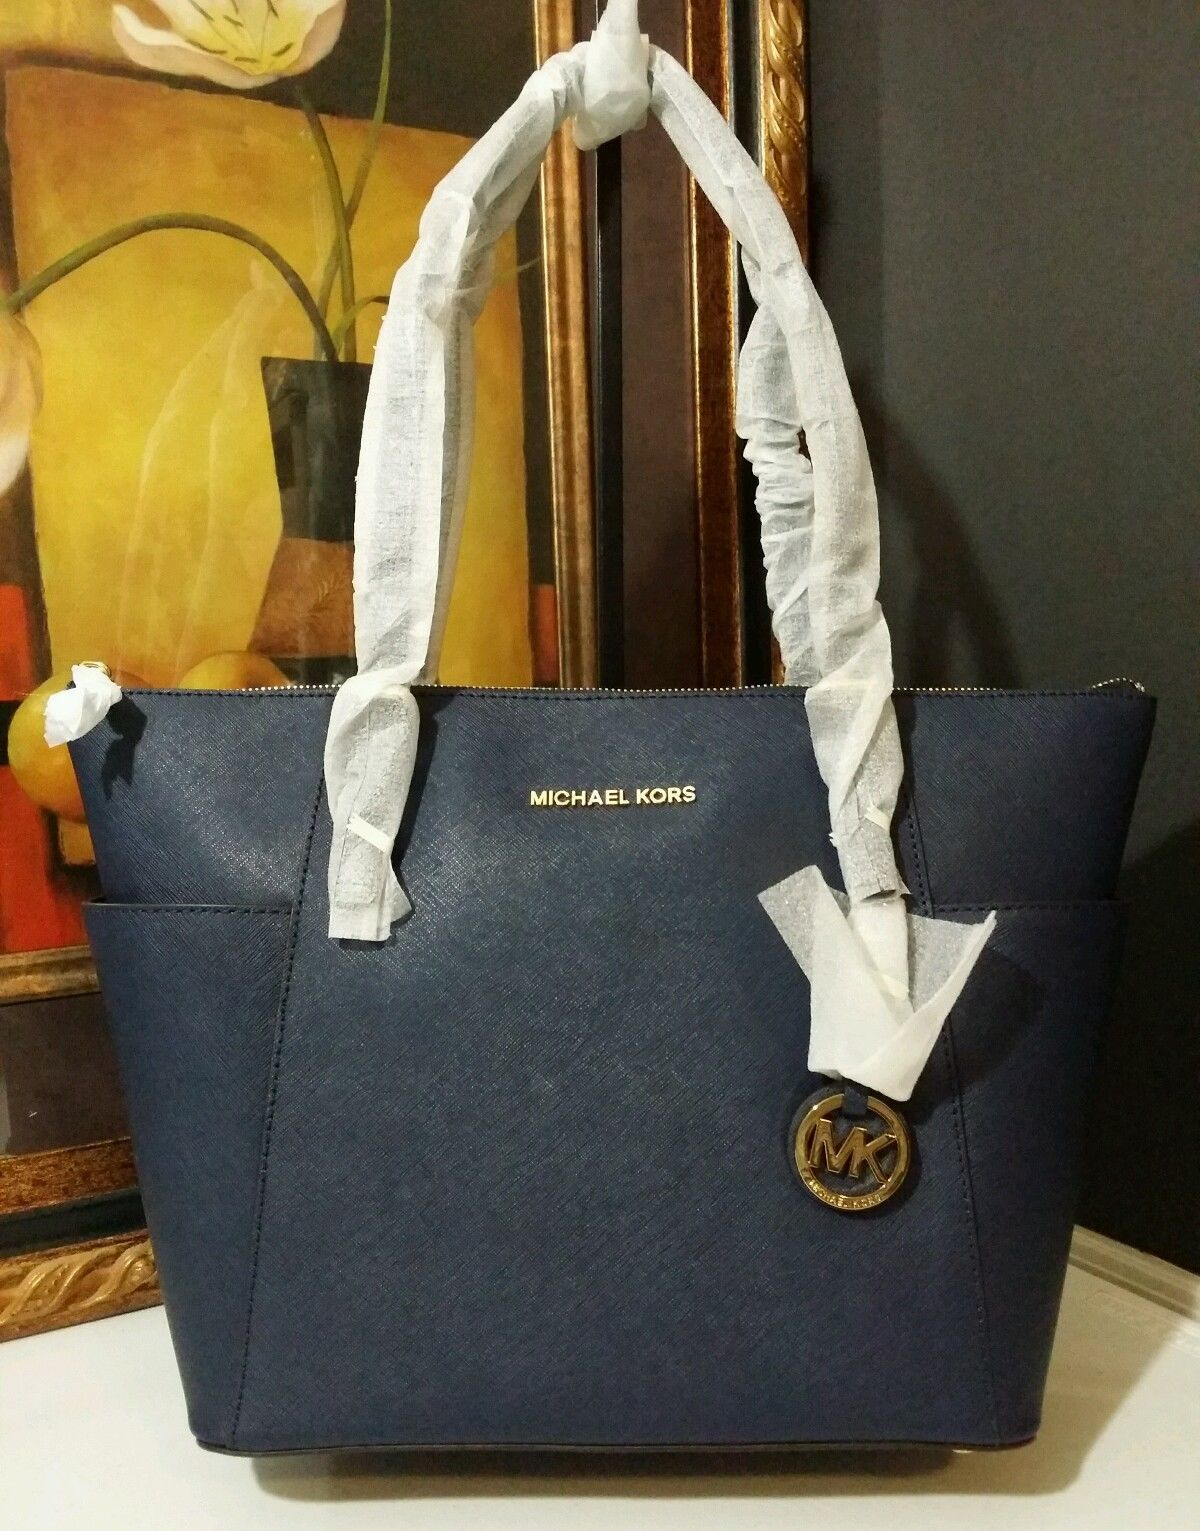 NWT MICHAEL KORS Jet Set East West Top Zip Saffiano Leather Tote Bag Navy